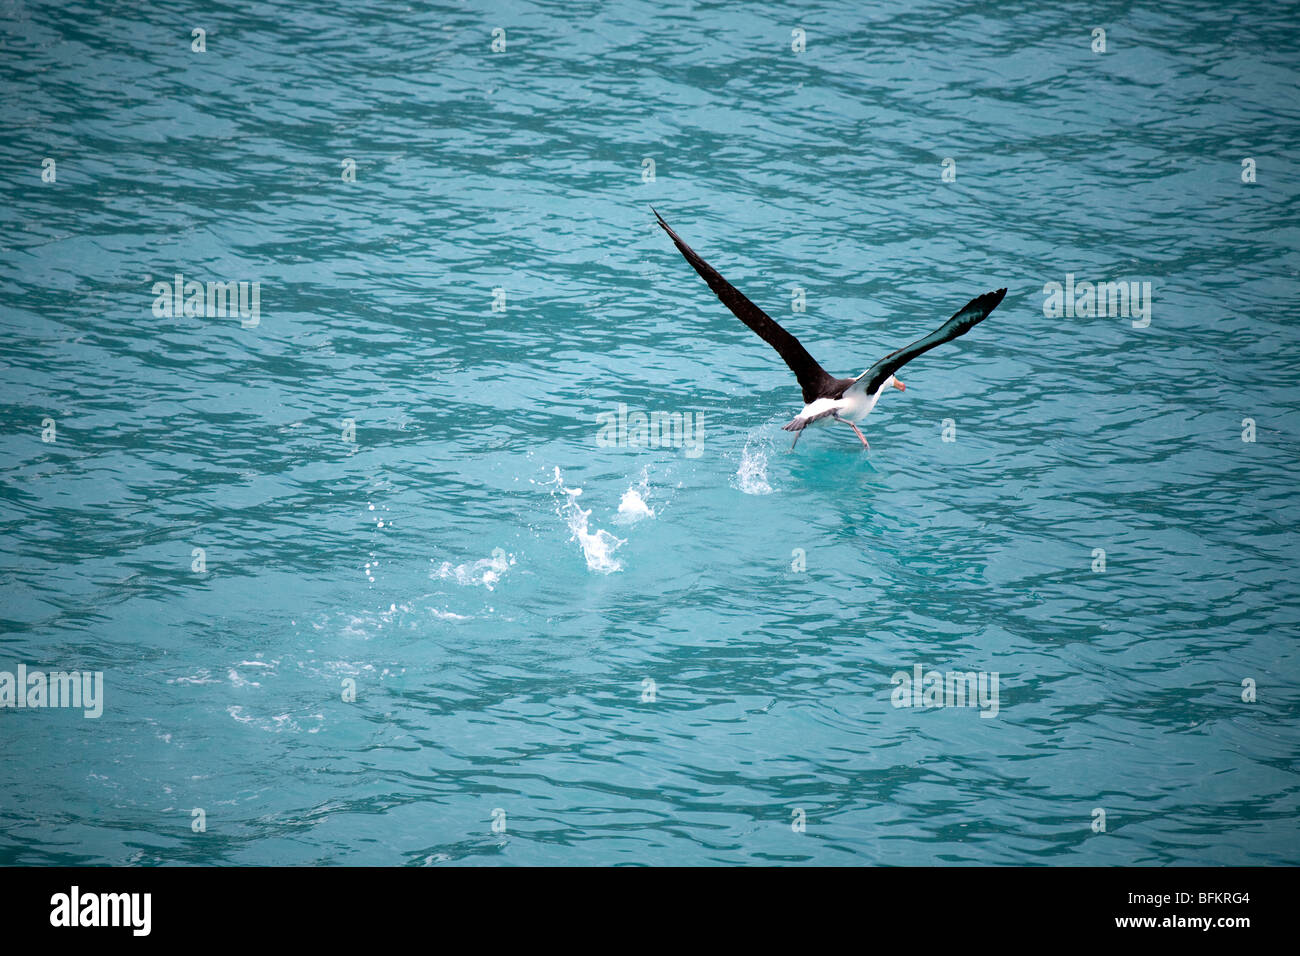 Black-browed albatross taking off from the water near Drygalski Fjord, South Georgia Island - Stock Image